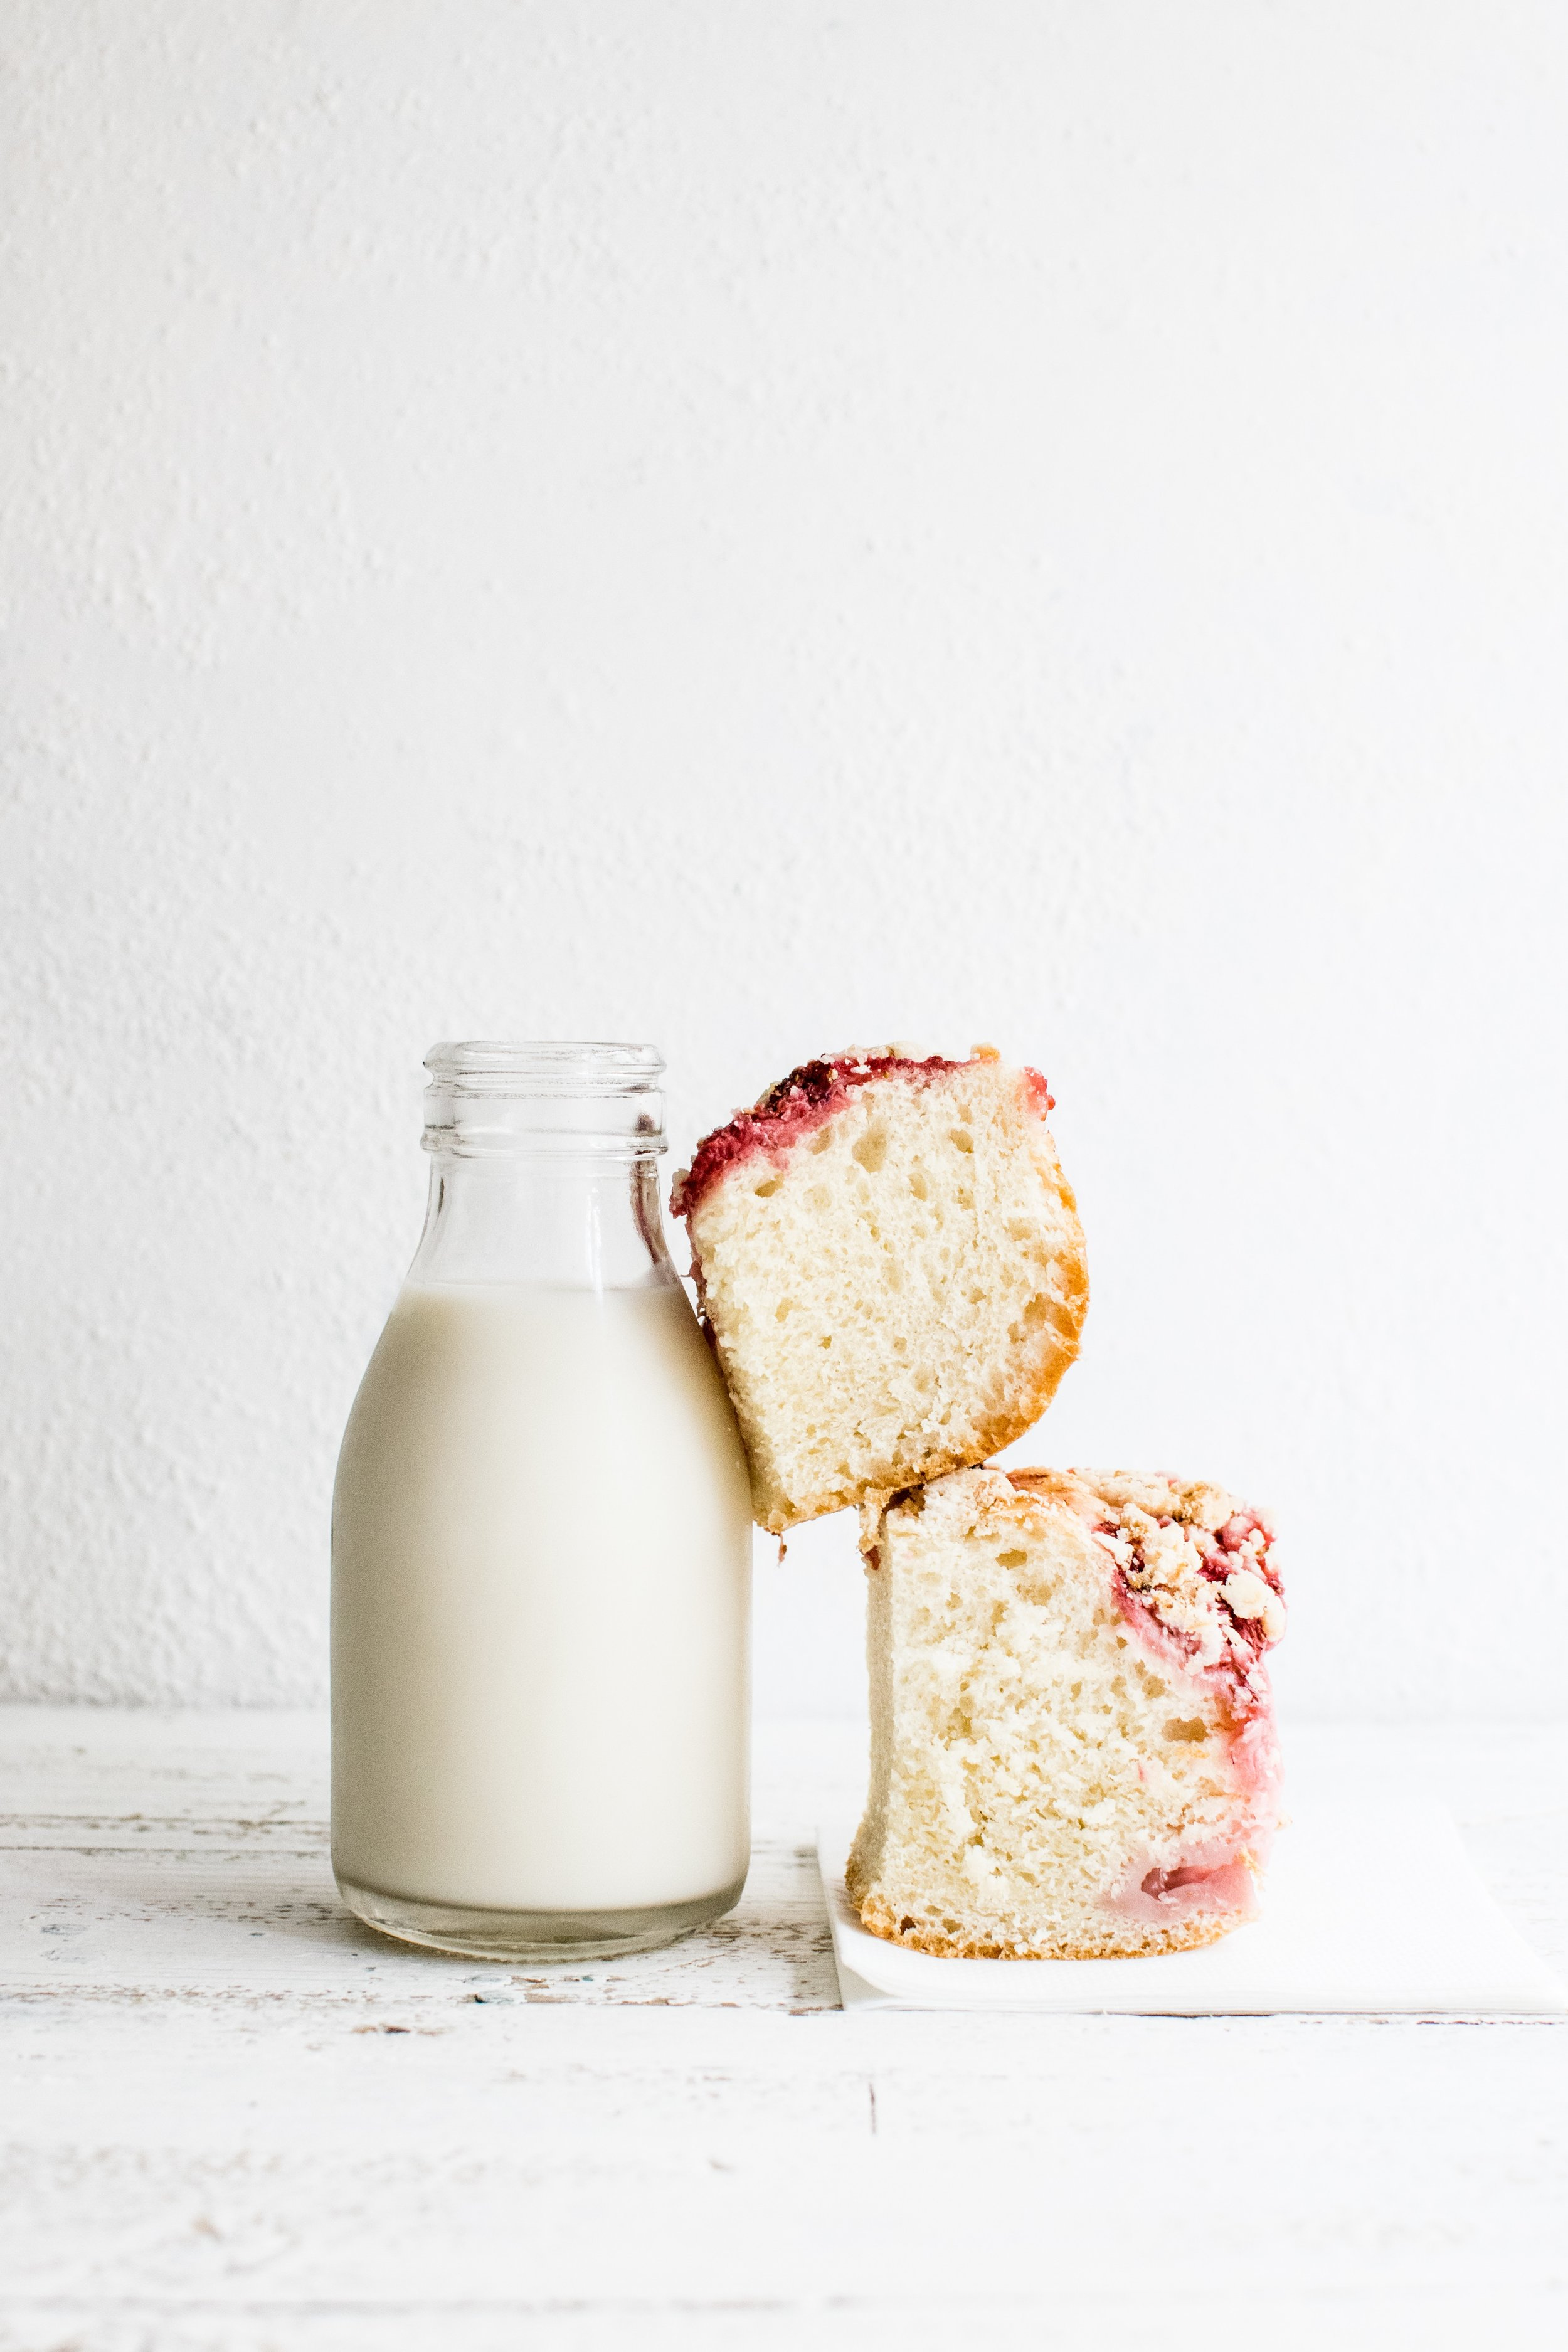 Dairy, Cancer Causing Foods | Wholesome LLC